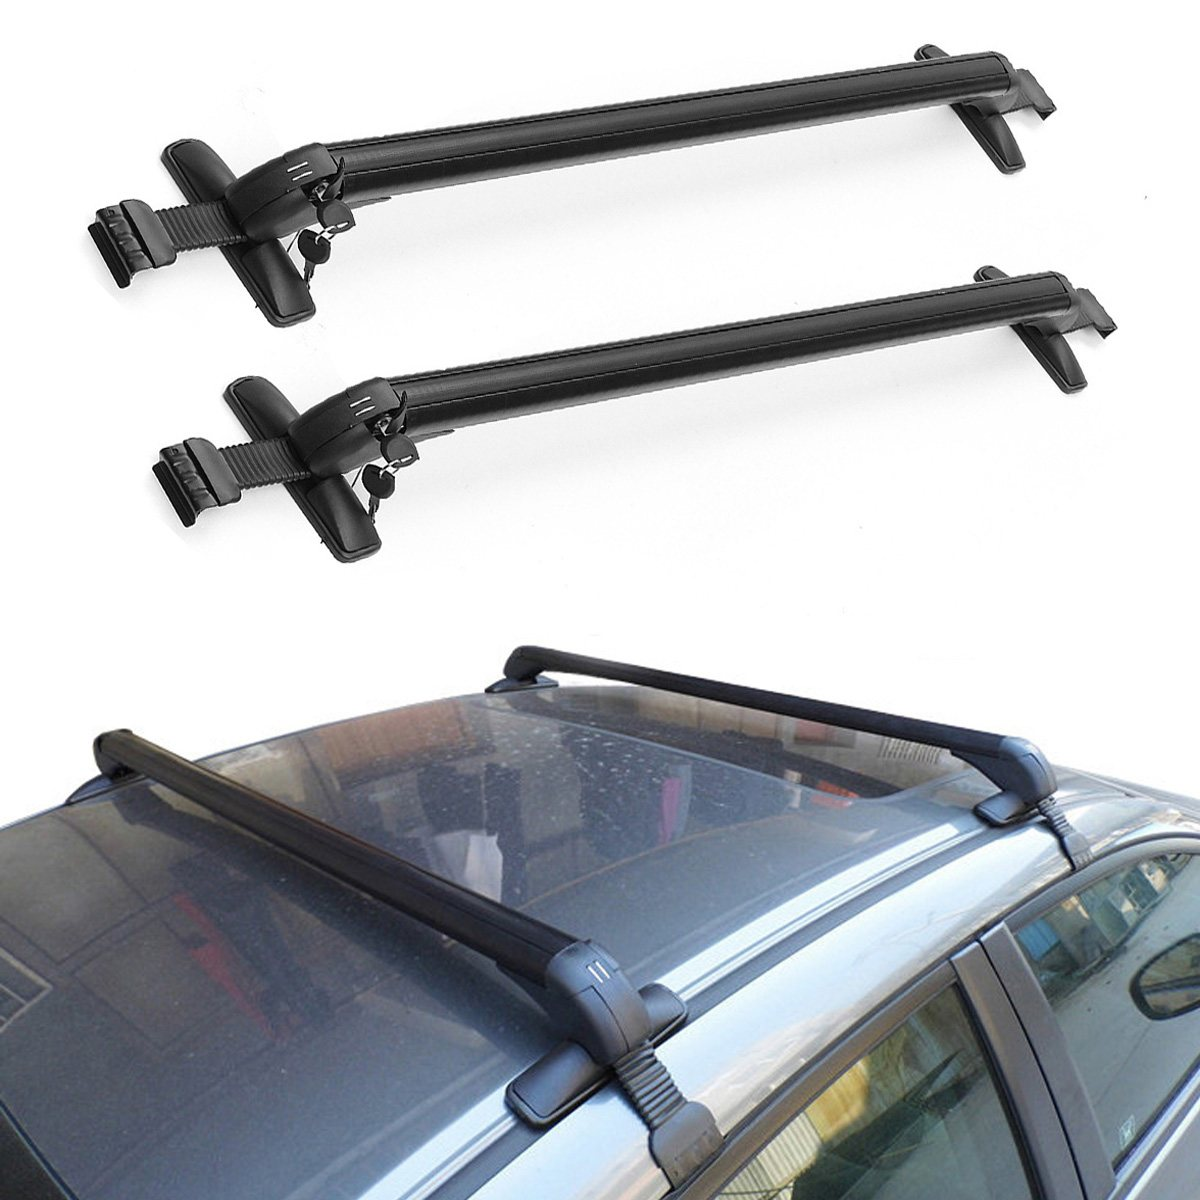 2pcs Universal Car Roof Cross Bar Anti Theft Lockable Bars